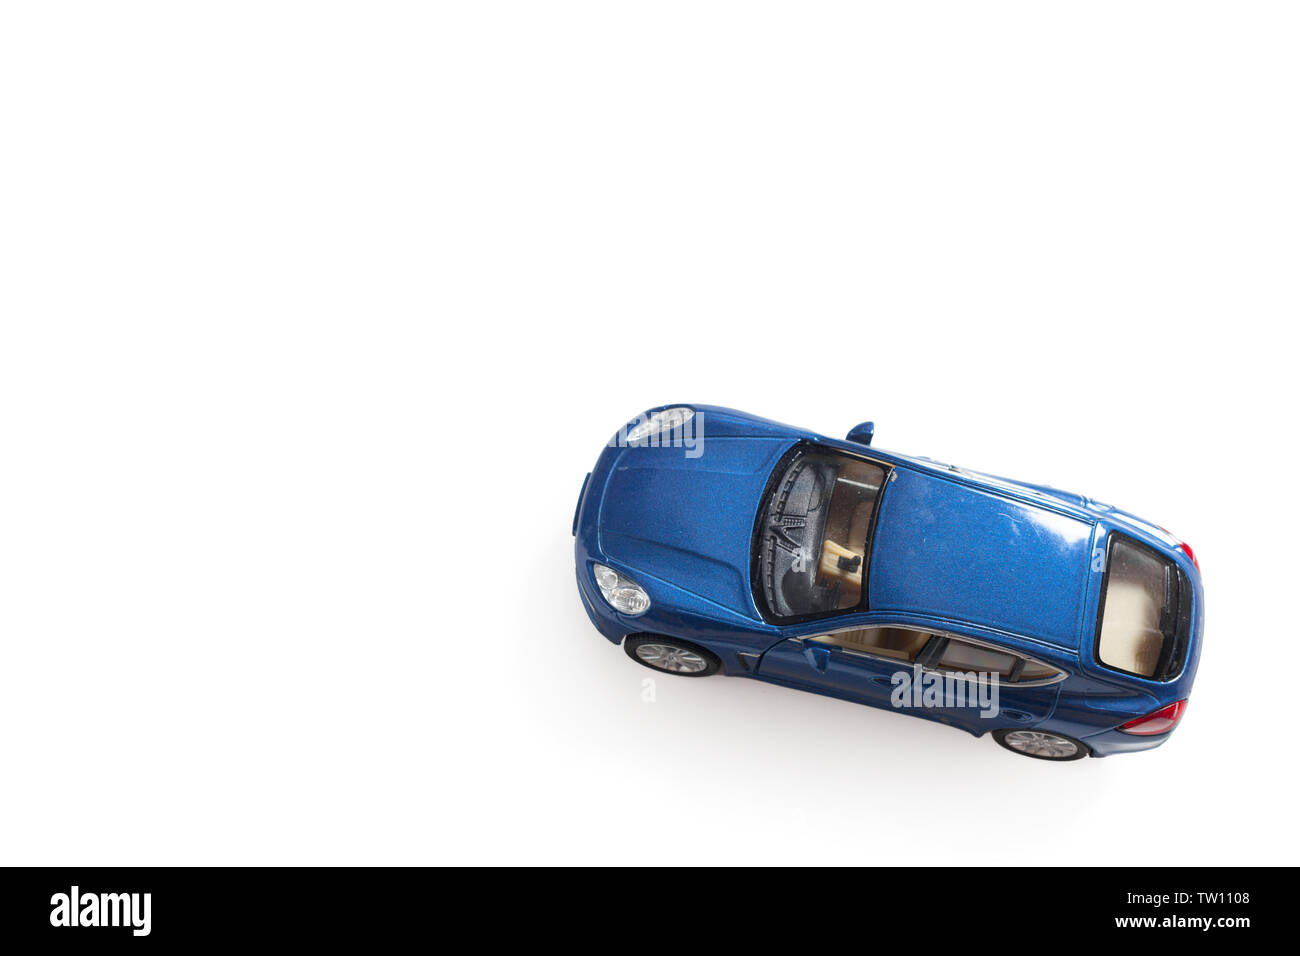 children's toy car - Stock Image